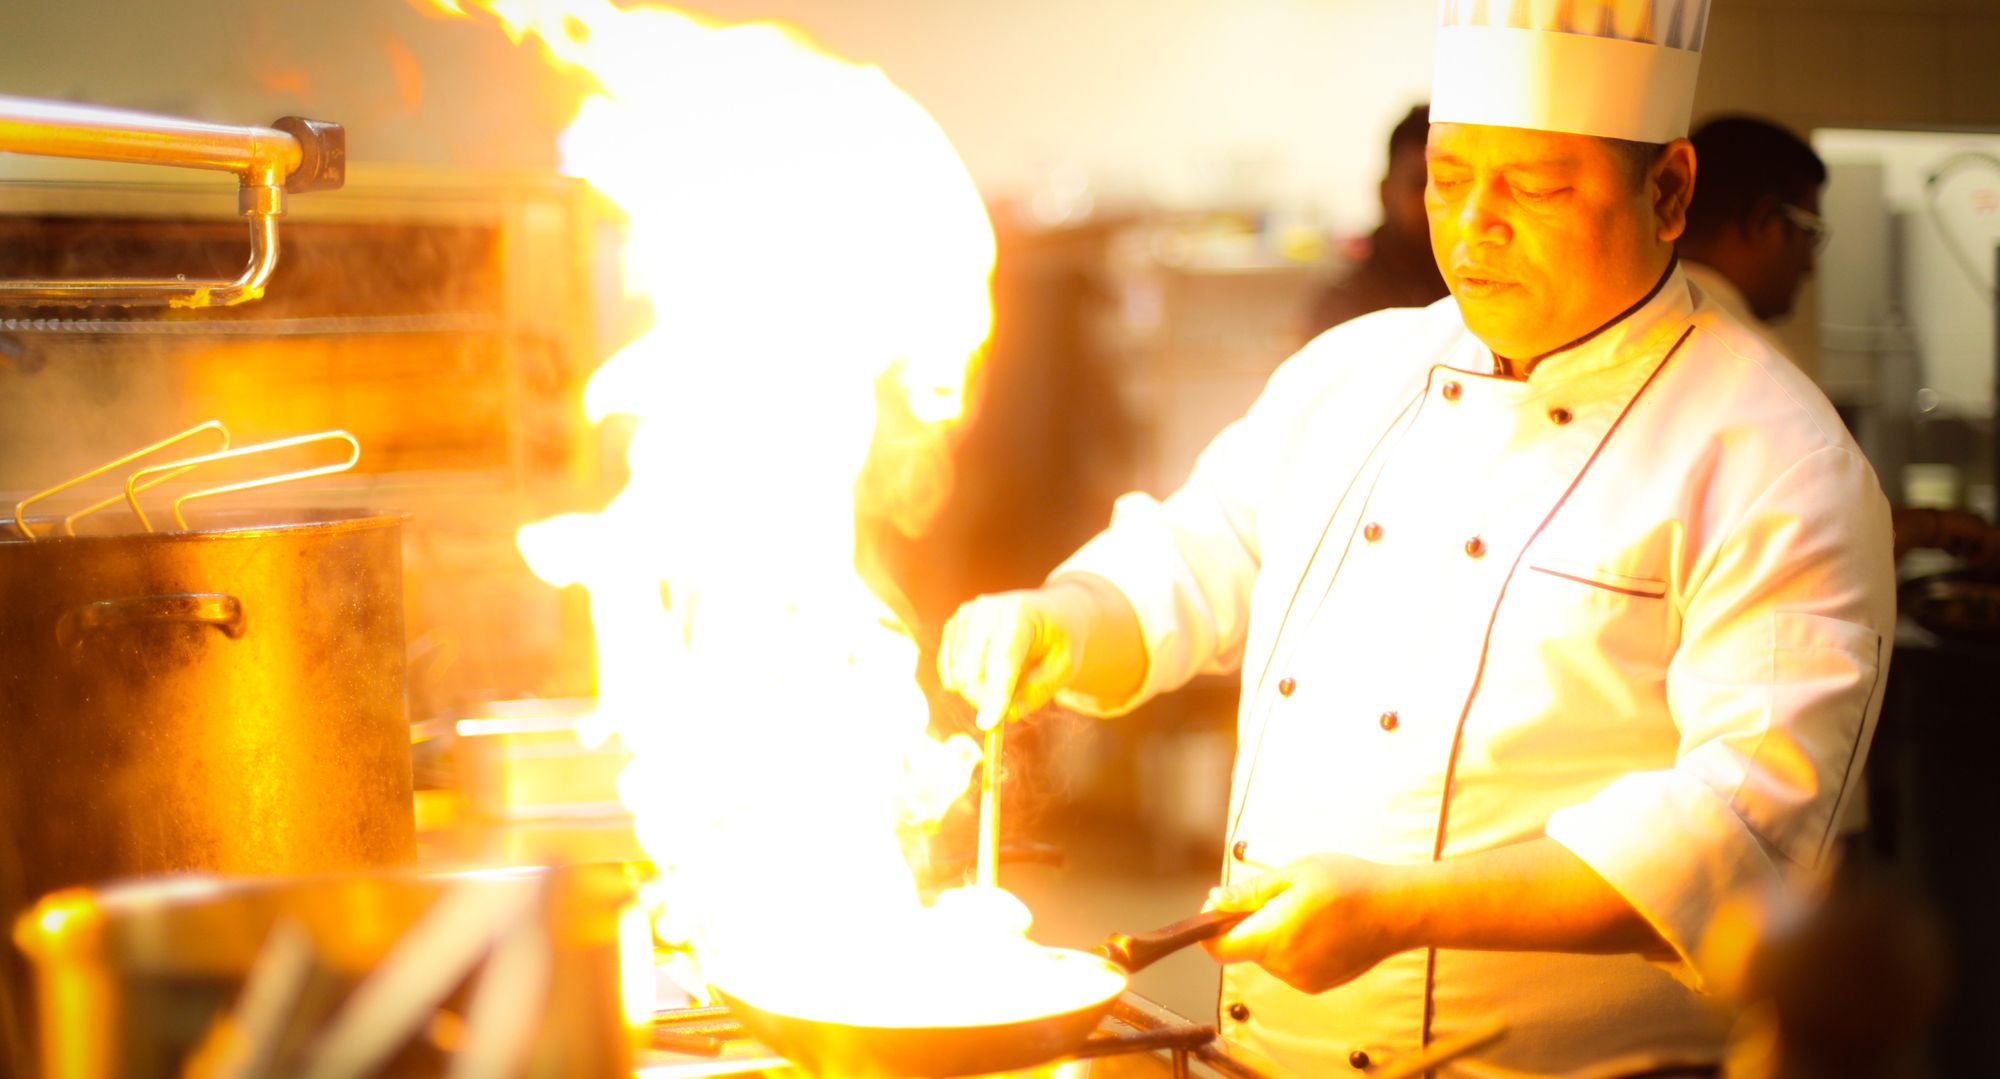 A chef manages a large fire in his pan.